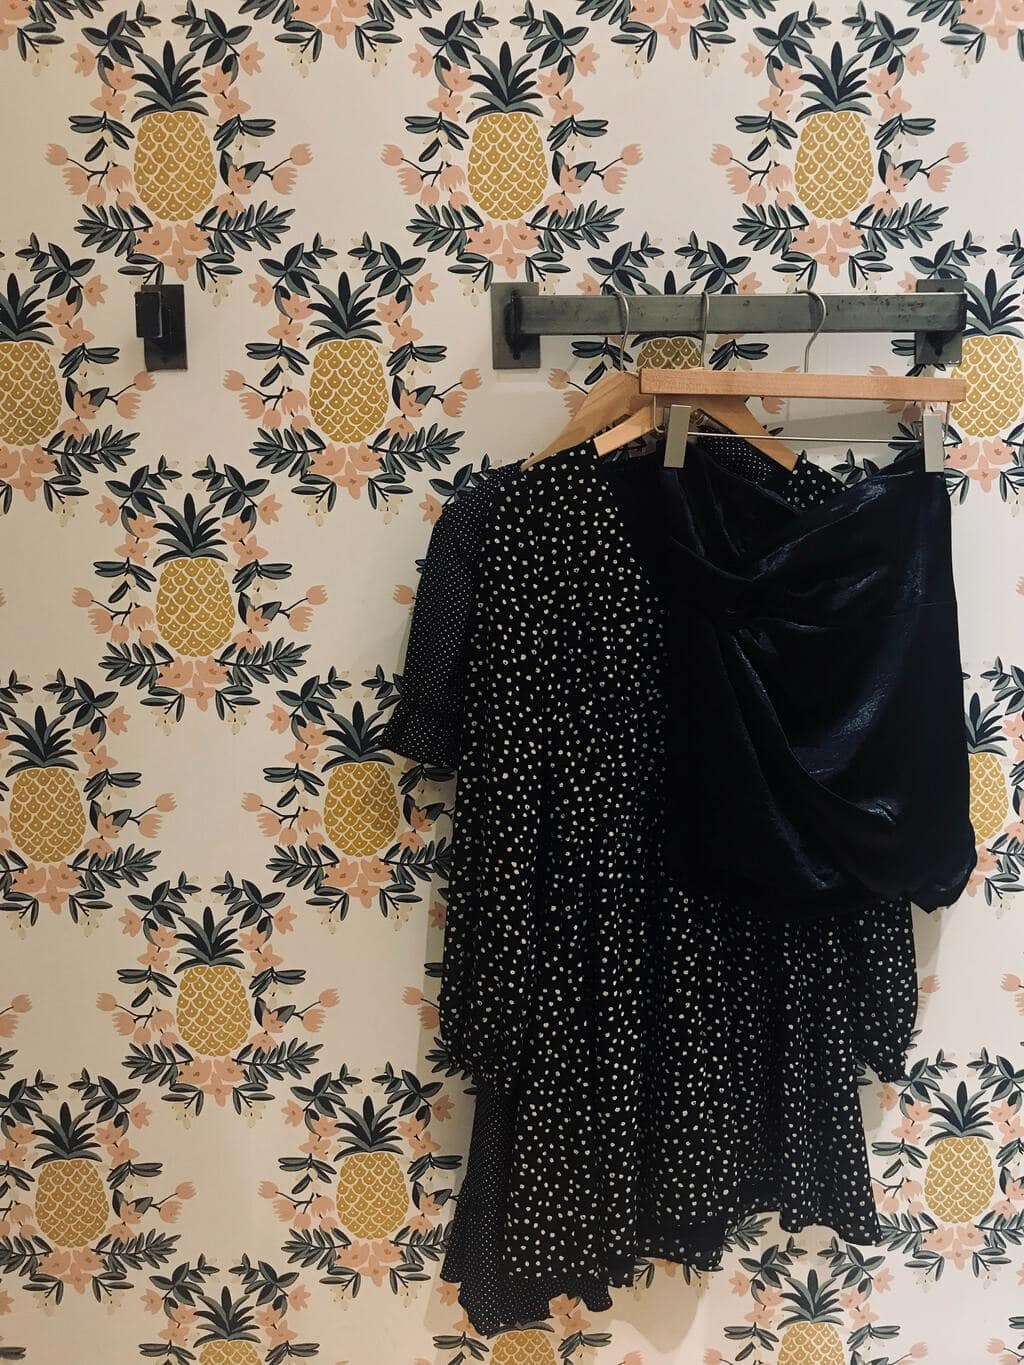 dresses and skirt hanging in front of pineapple wallpaper